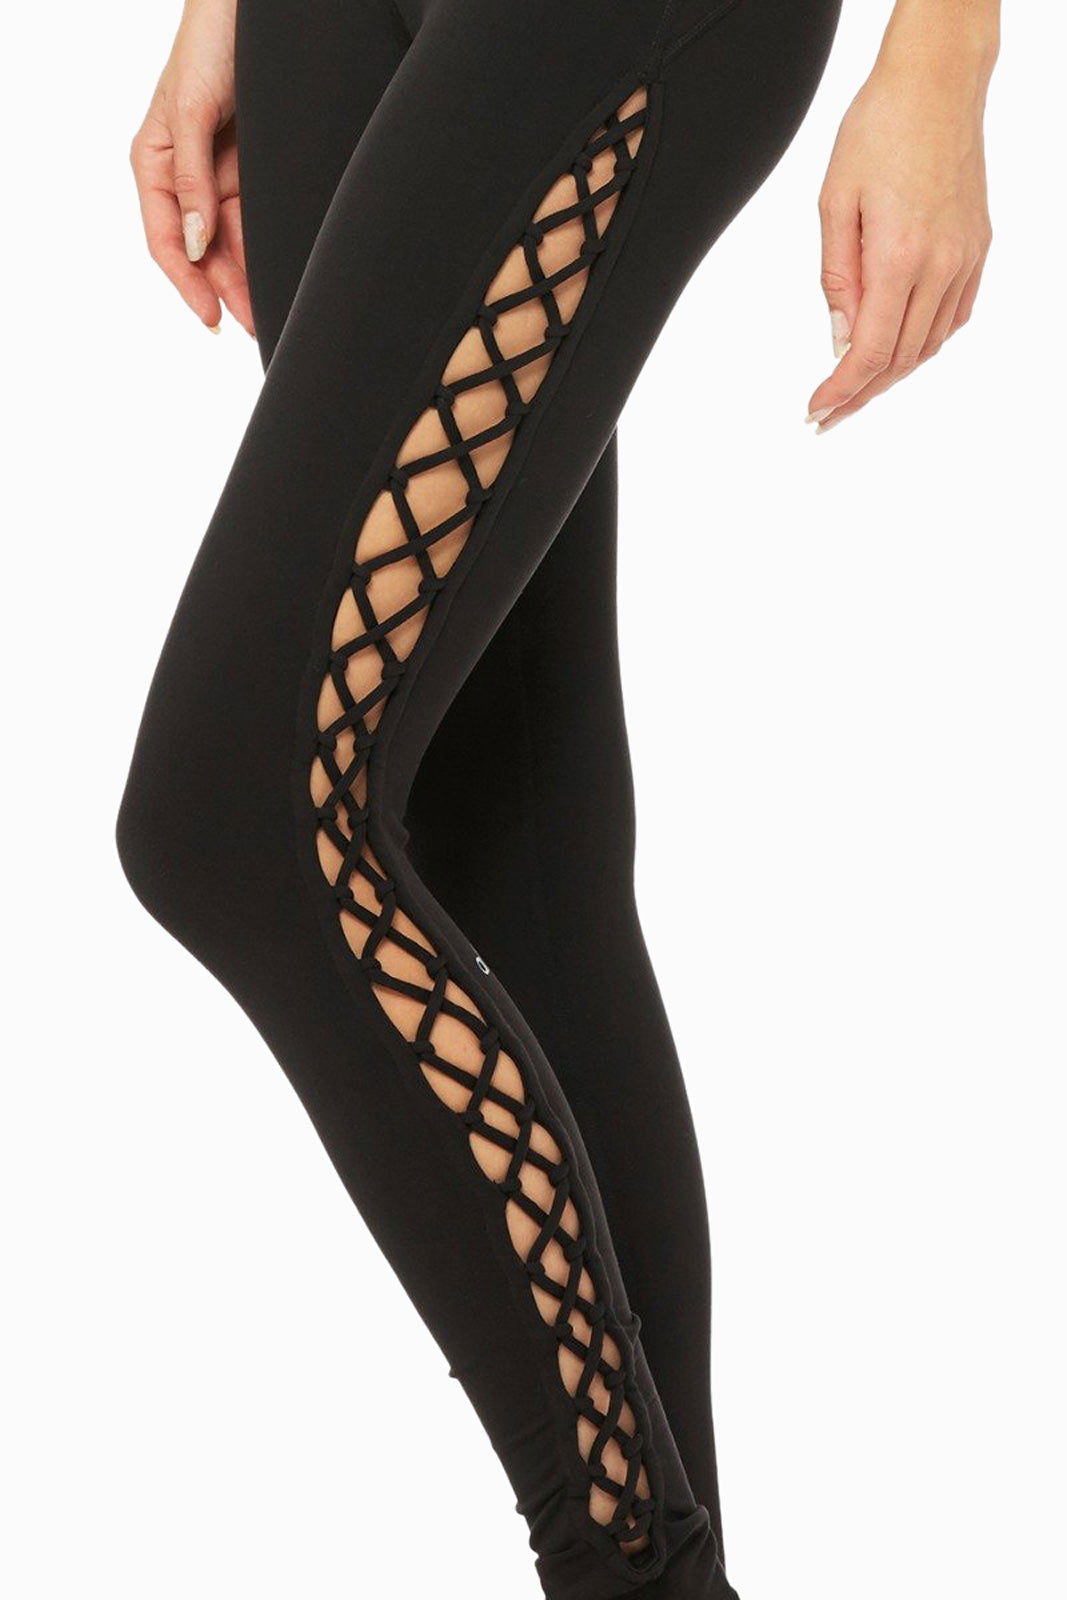 Alo Yoga Interlace Legging - Black image 4 - The Sports Edit